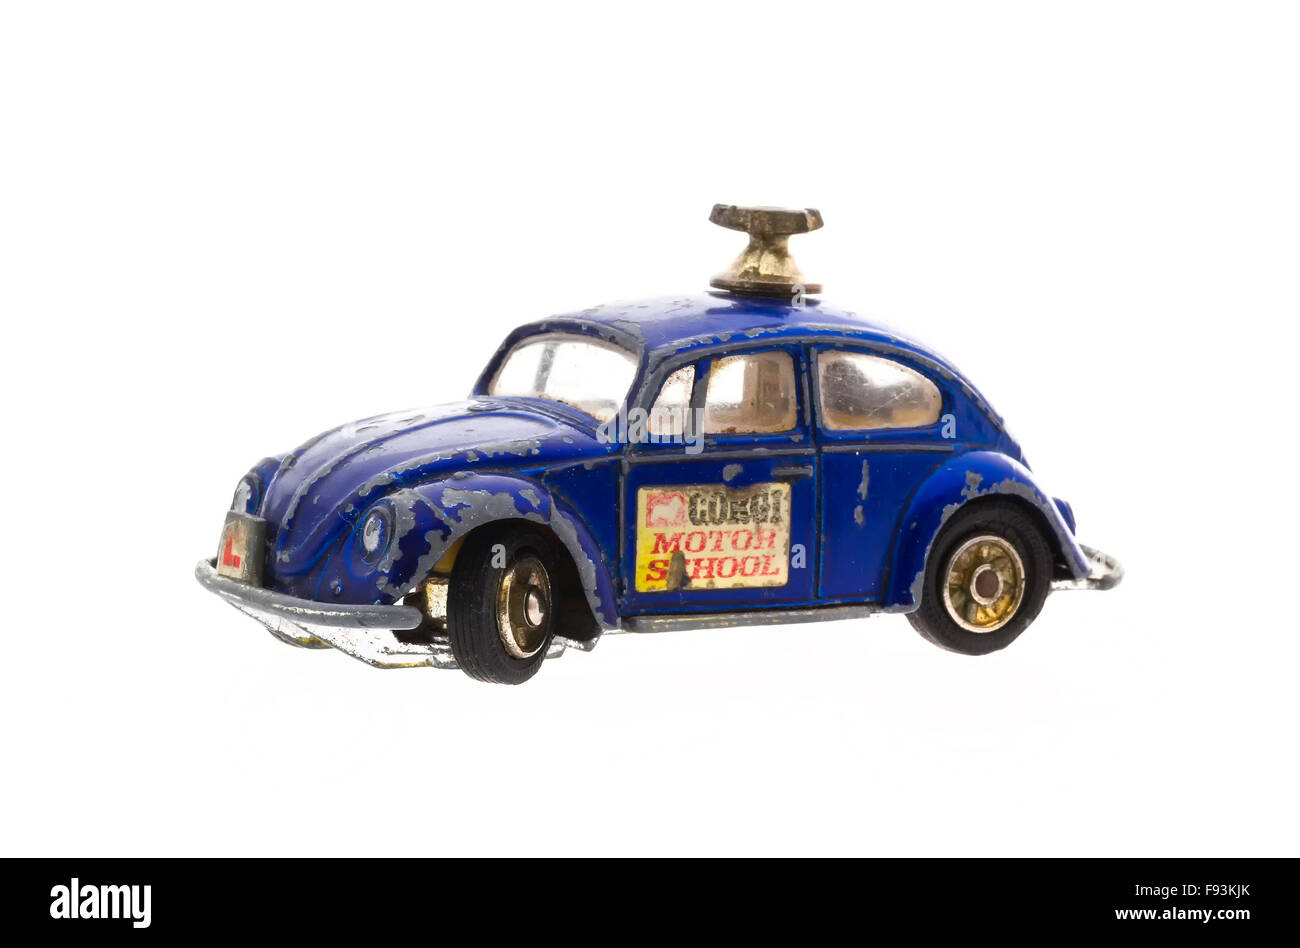 An Old Well Worn Corgi Motor School VW Beetle Die cast model on a white background. - Stock Image